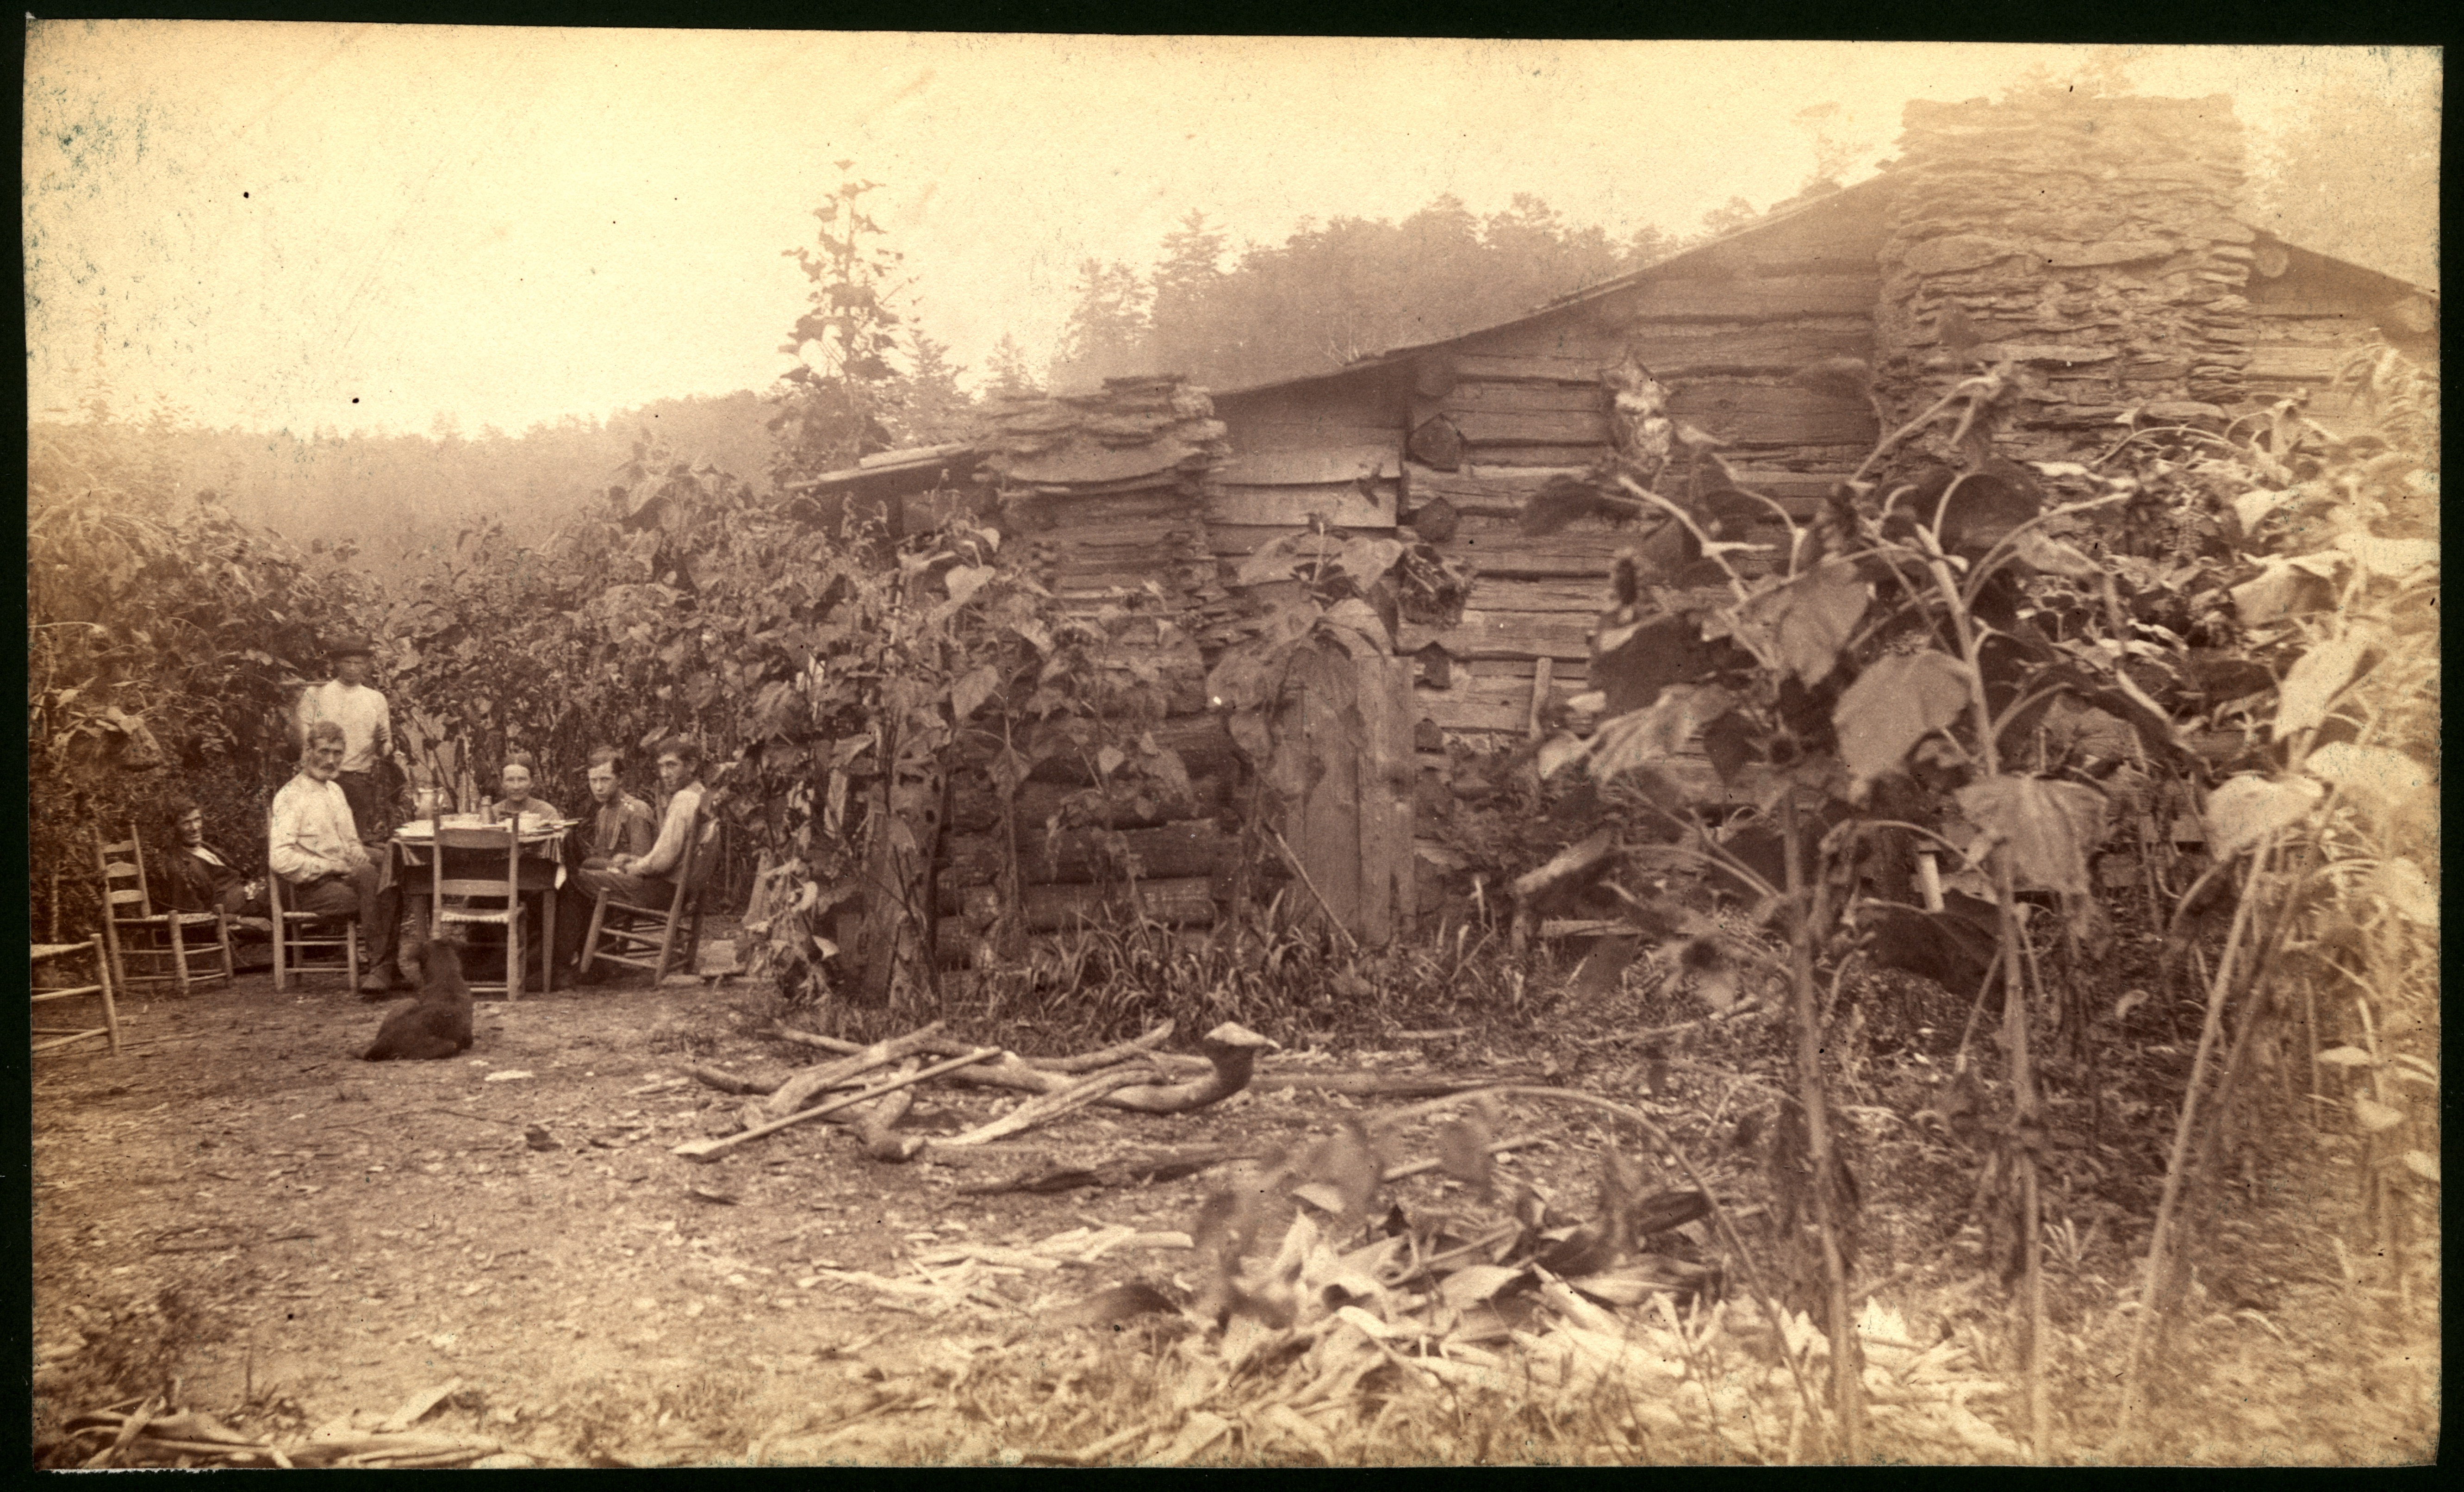 A.J. Dorsey's cabin. Family at breakfast